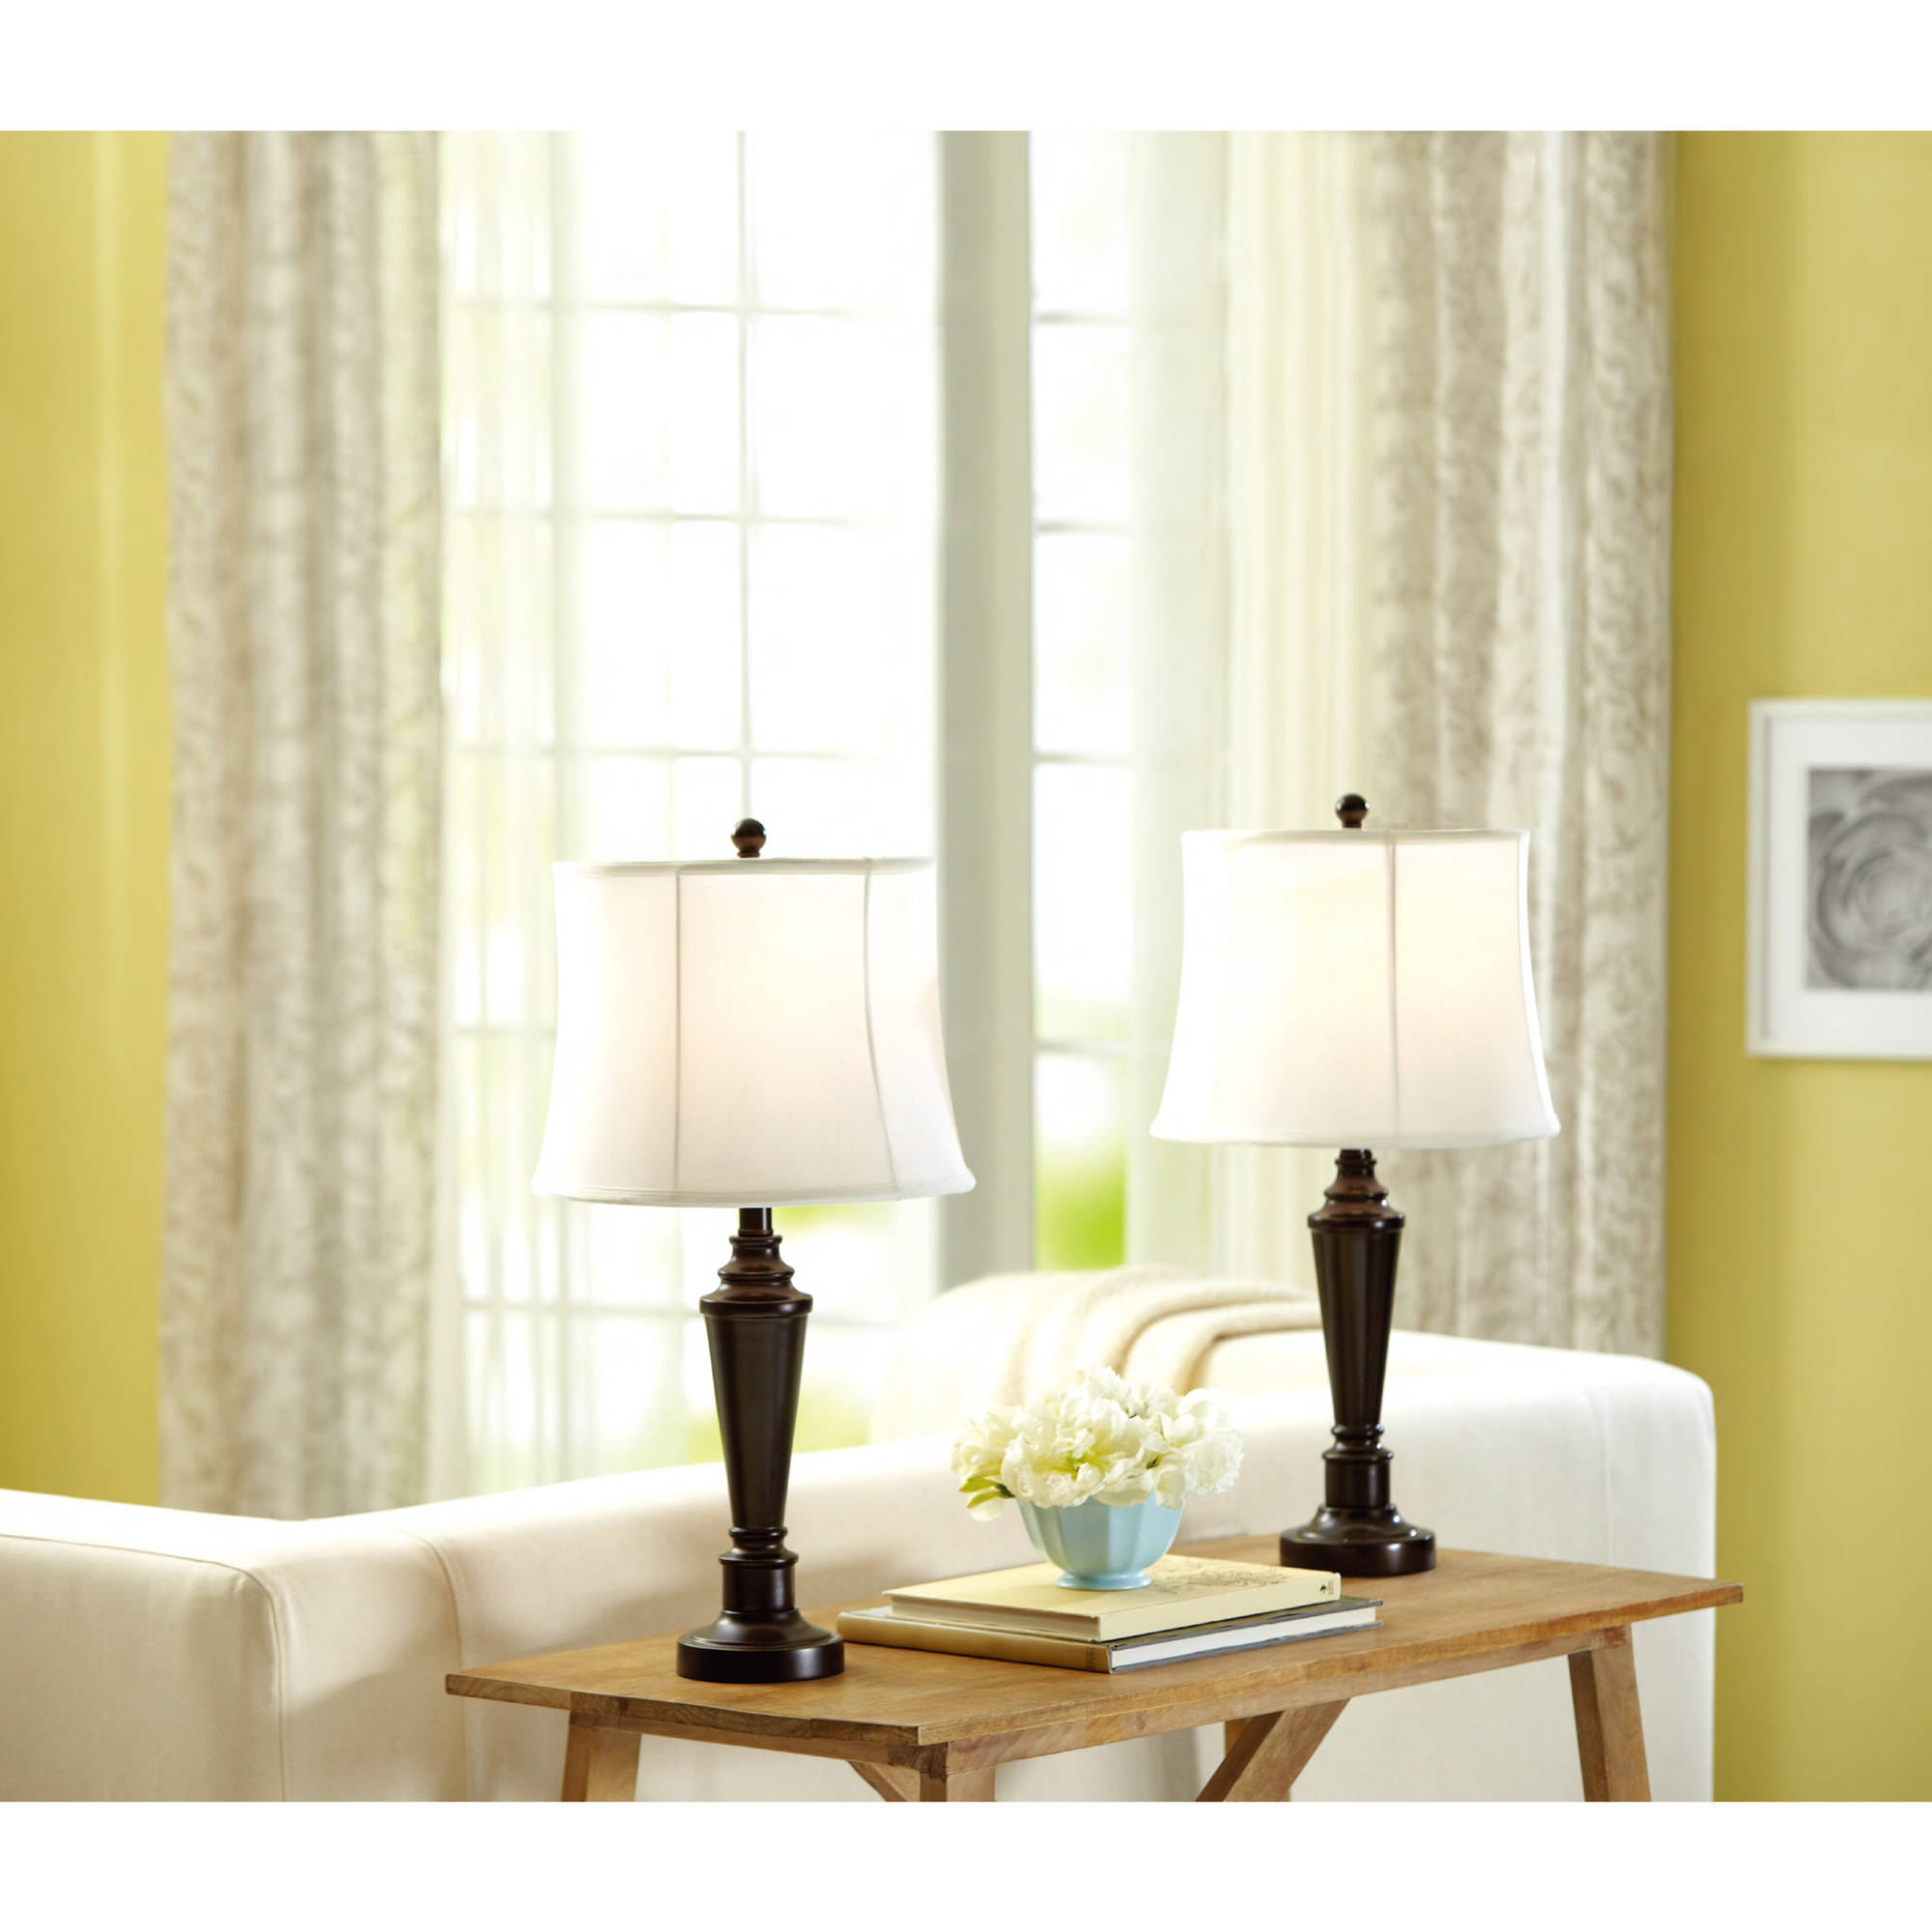 Better Homes and Gardens Transitional 2-Piece Lamp Set with Bulbs